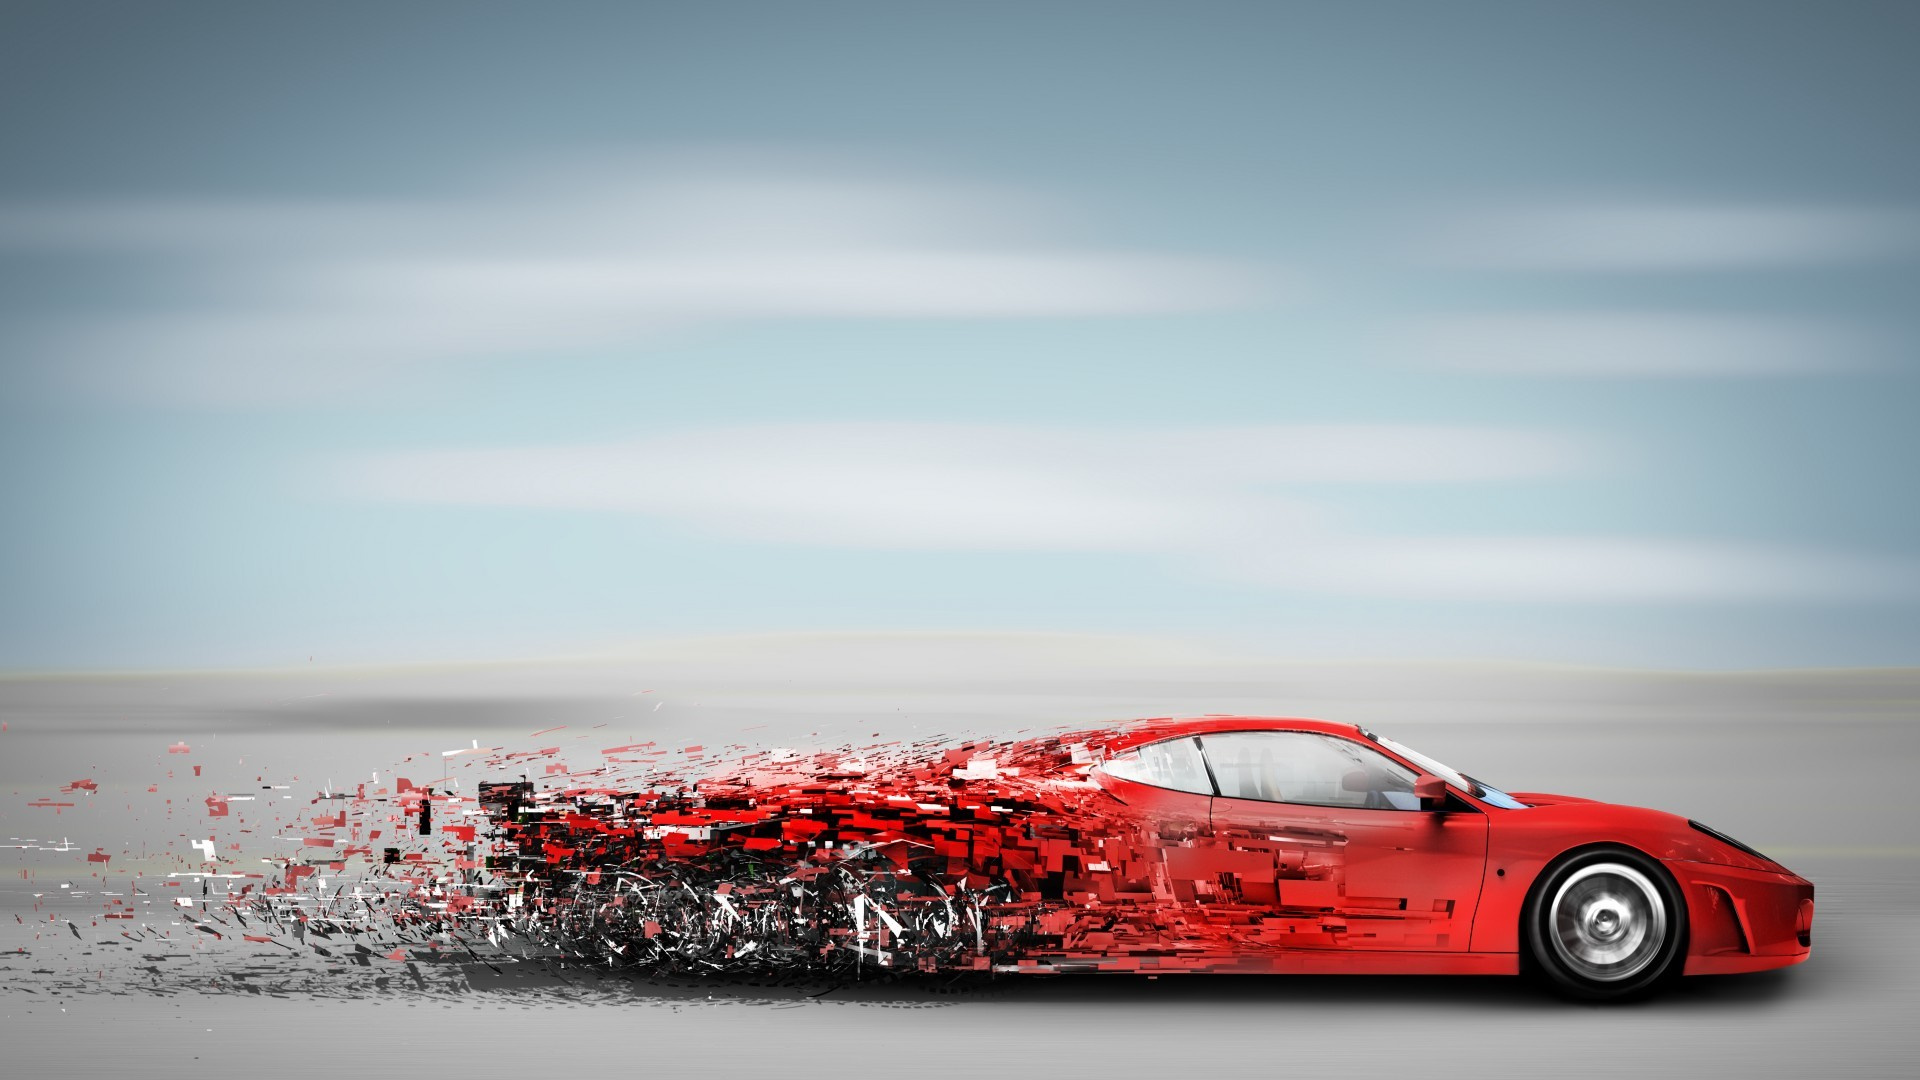 1920x1080 Cars vehicles cg digital art fragment pieces red wallpaper |  |  33310 | WallpaperUP